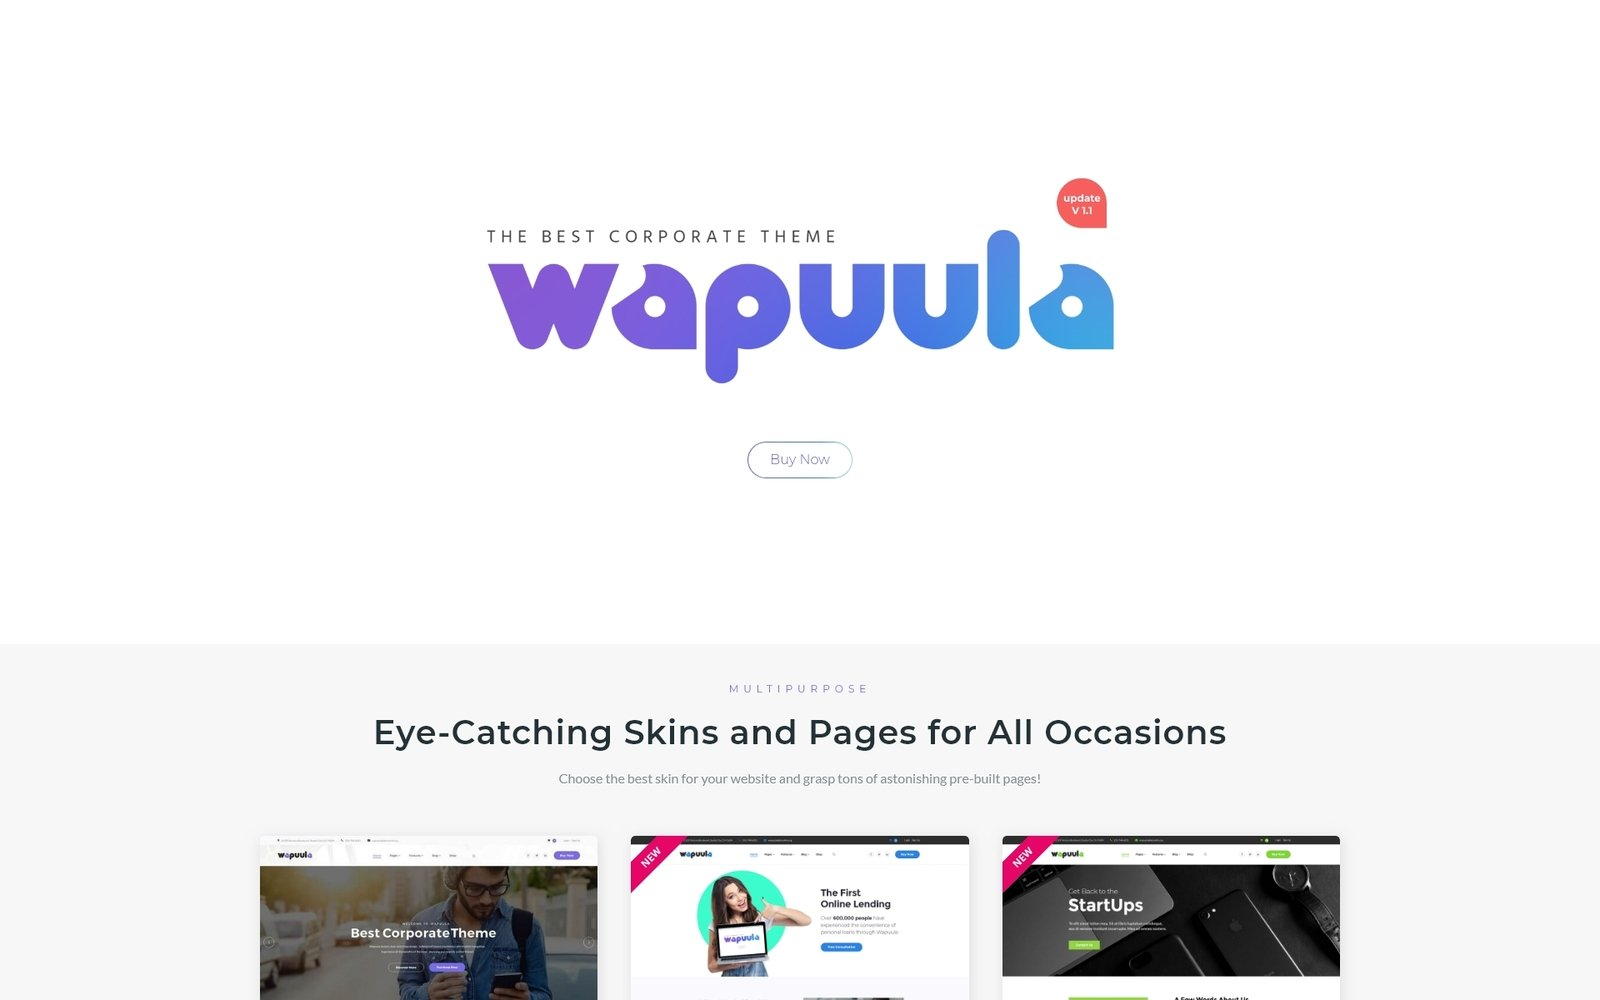 Responsivt Wapuula - Multipurpose Corporate WordPress Theme WordPress-tema #62666 - skärmbild